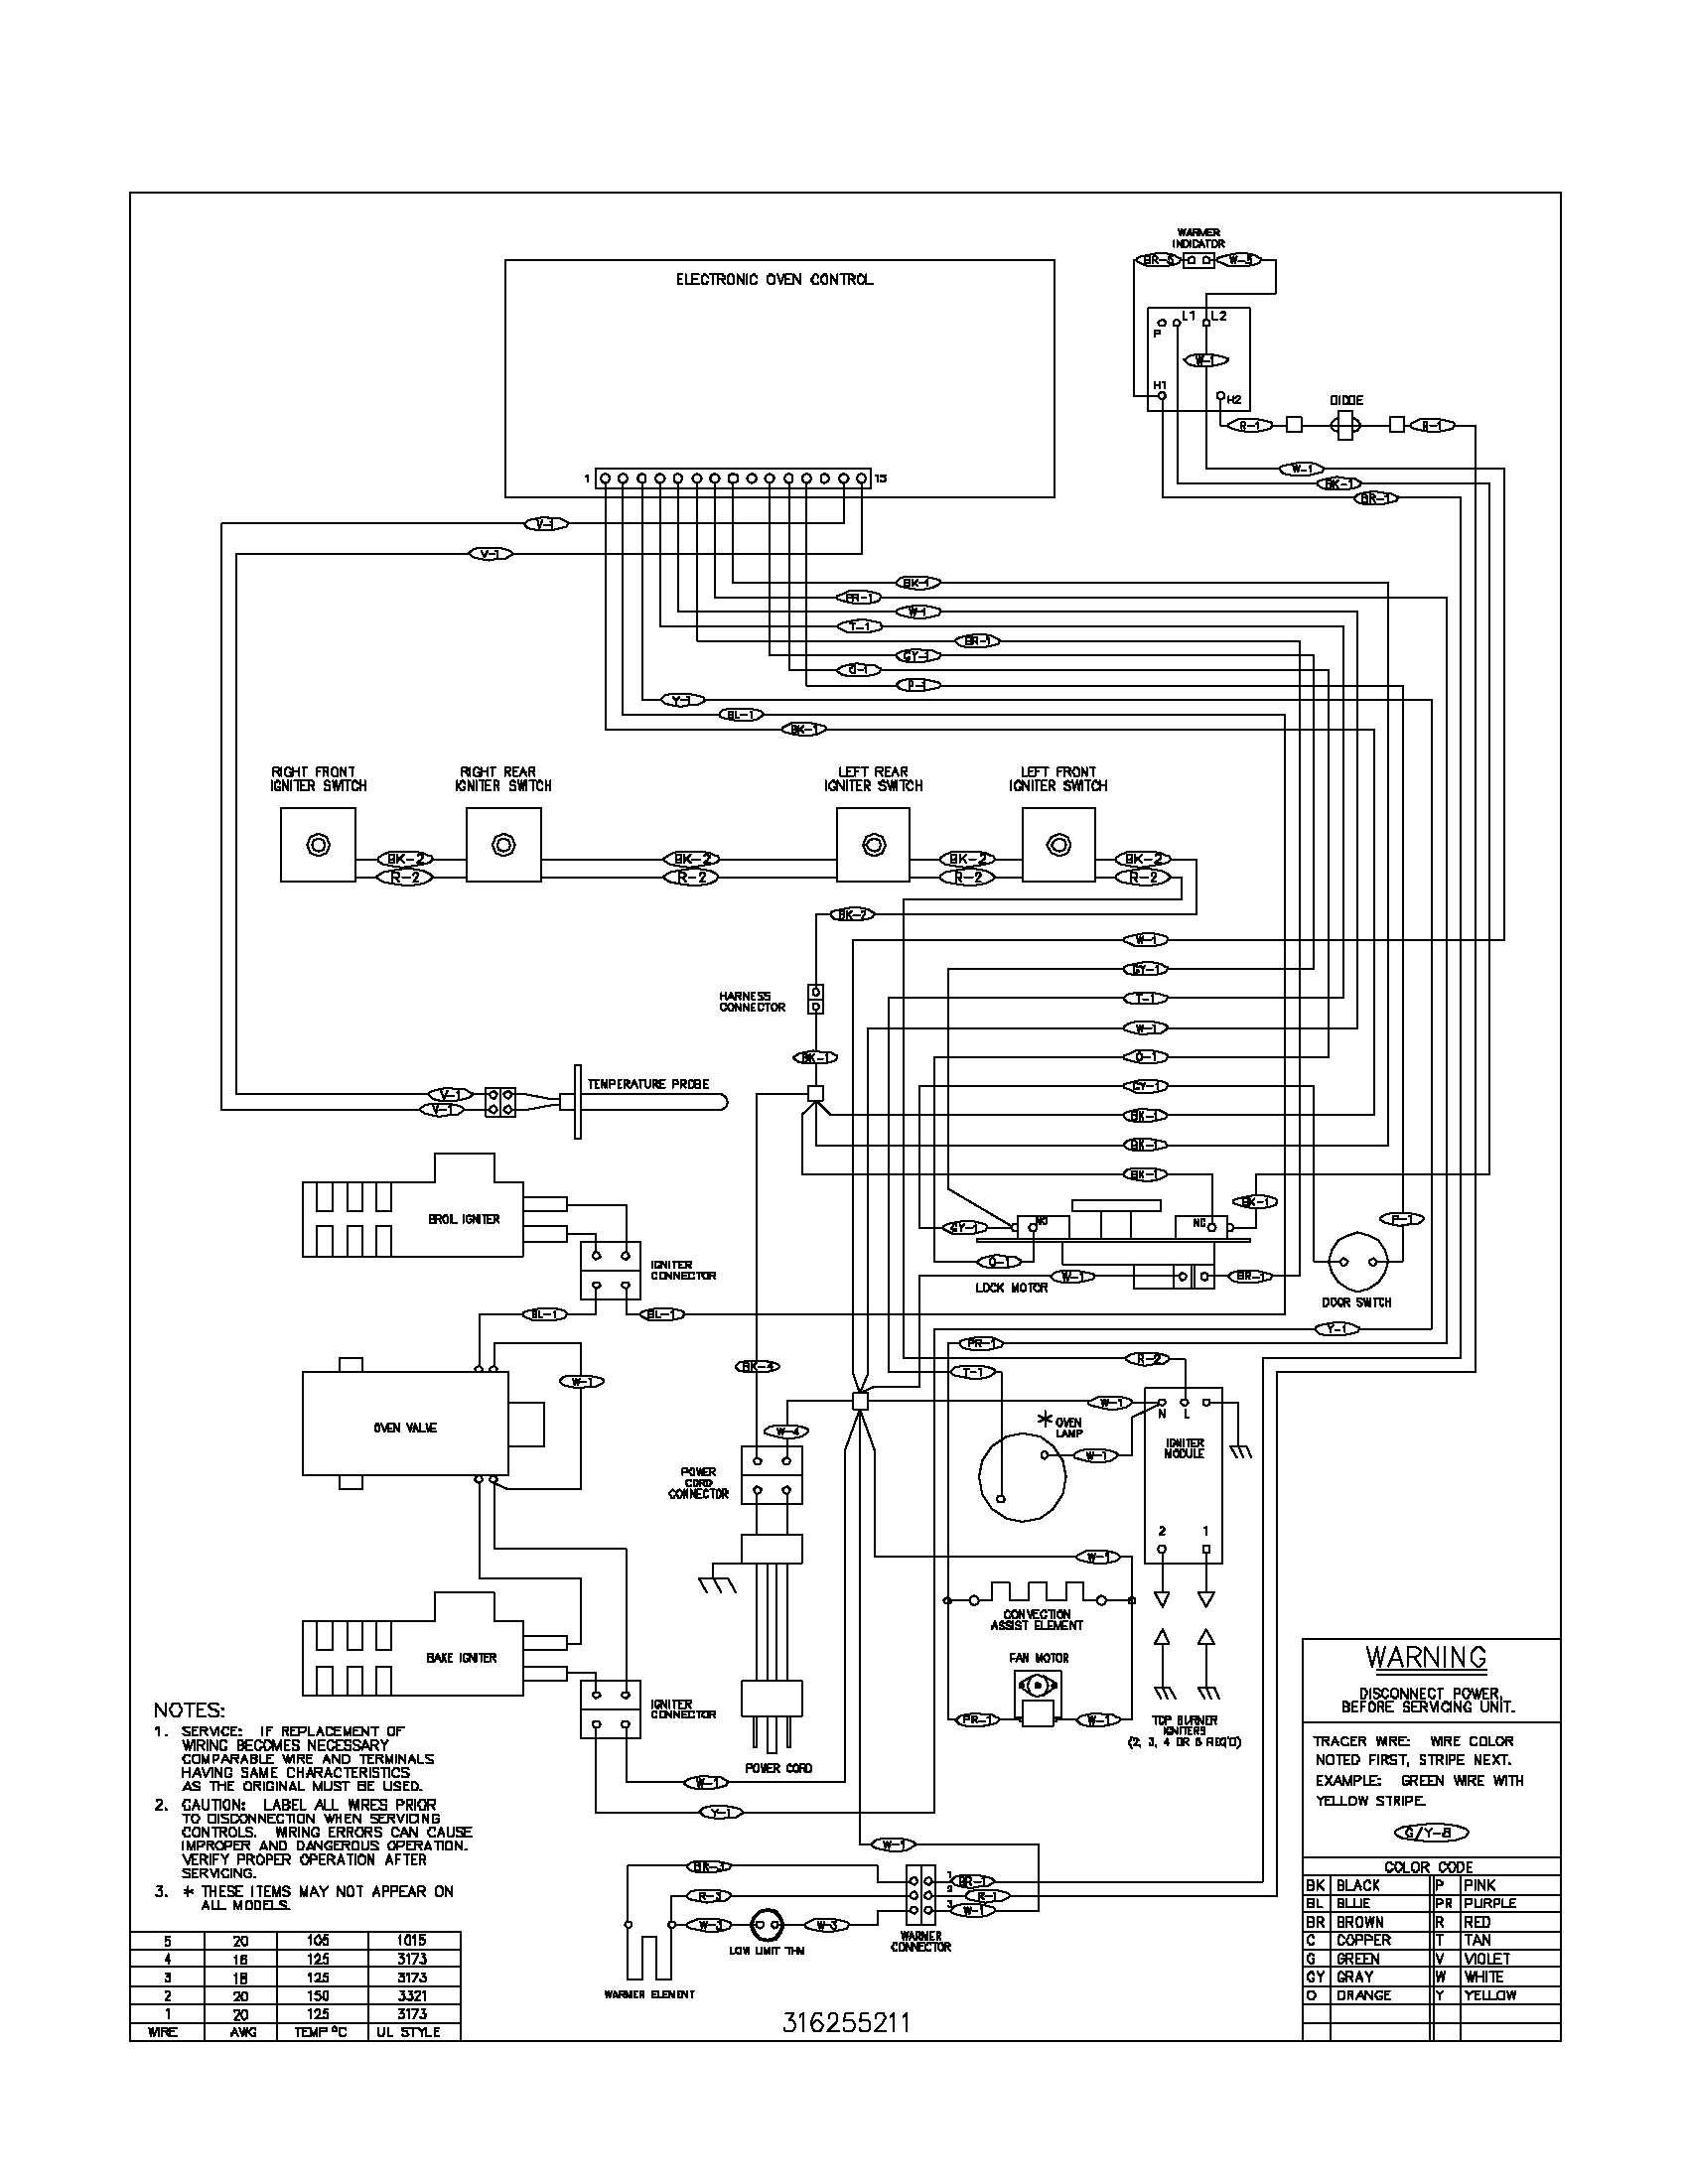 frigidaire plgf389aca gas range timer stove clocks and applianceplgf389aca gas range wiring diagram parts diagram